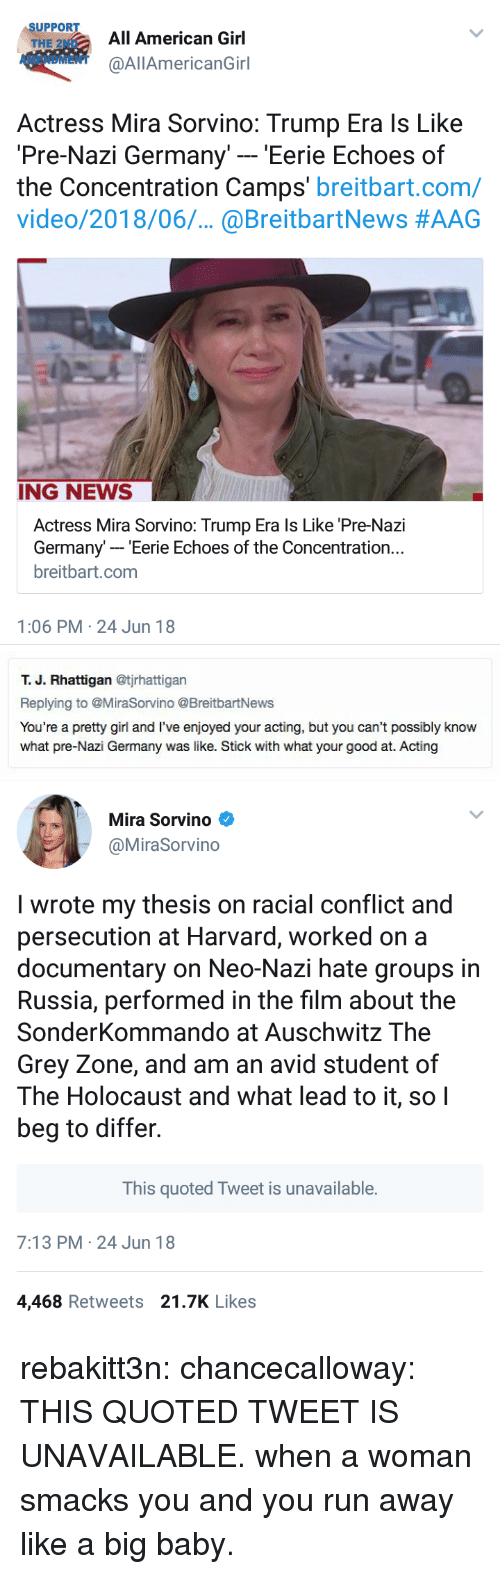 Neo Nazi: SUPPORT  THE 2ND  AMENDMENT  All American Girl  @AllAmericanGirl  Actress Mira Sorvino: Trump Era ls Like  Pre-Nazi Germany' - 'Eerie Echoes of  the Concentration Camps' breitbart.com/  video/2018/06.. @BreitbartNews #AAG  ING NEWS  Actress Mira Sorvino: Trump Era ls Like 'Pre-Nazi  Germany- Eerie Echoes of the Concentration..  breitbart.com  1:06 PM 24 Jun 18   т. Ј. Rhattigan @tjrhattigan  Replying to @MiraSorvino @BreitbartNews  You're a pretty girl and I've enjoyed your acting, but you can't possibly know  what pre-Nazi Germany was like. Stick with what your good at. Acting   Mira Sorvino  @MiraSorvino  I wrote my thesis on racial conflict and  persecution at Harvard, worked on a  documentary on Neo-Nazi hate groups in  Russia, performed in the film about the  SonderKommando at Auschwitz The  Grey Zone, and am an avid student of  The Holocaust and what lead to it, soI  beg to differ.  This quoted Tweet is unavailable.  7:13 PM 24 Jun 18  4,468 Retweets 21.7K Likes rebakitt3n:  chancecalloway: THIS QUOTED TWEET IS UNAVAILABLE. when a woman smacks you and you run away like a big baby.